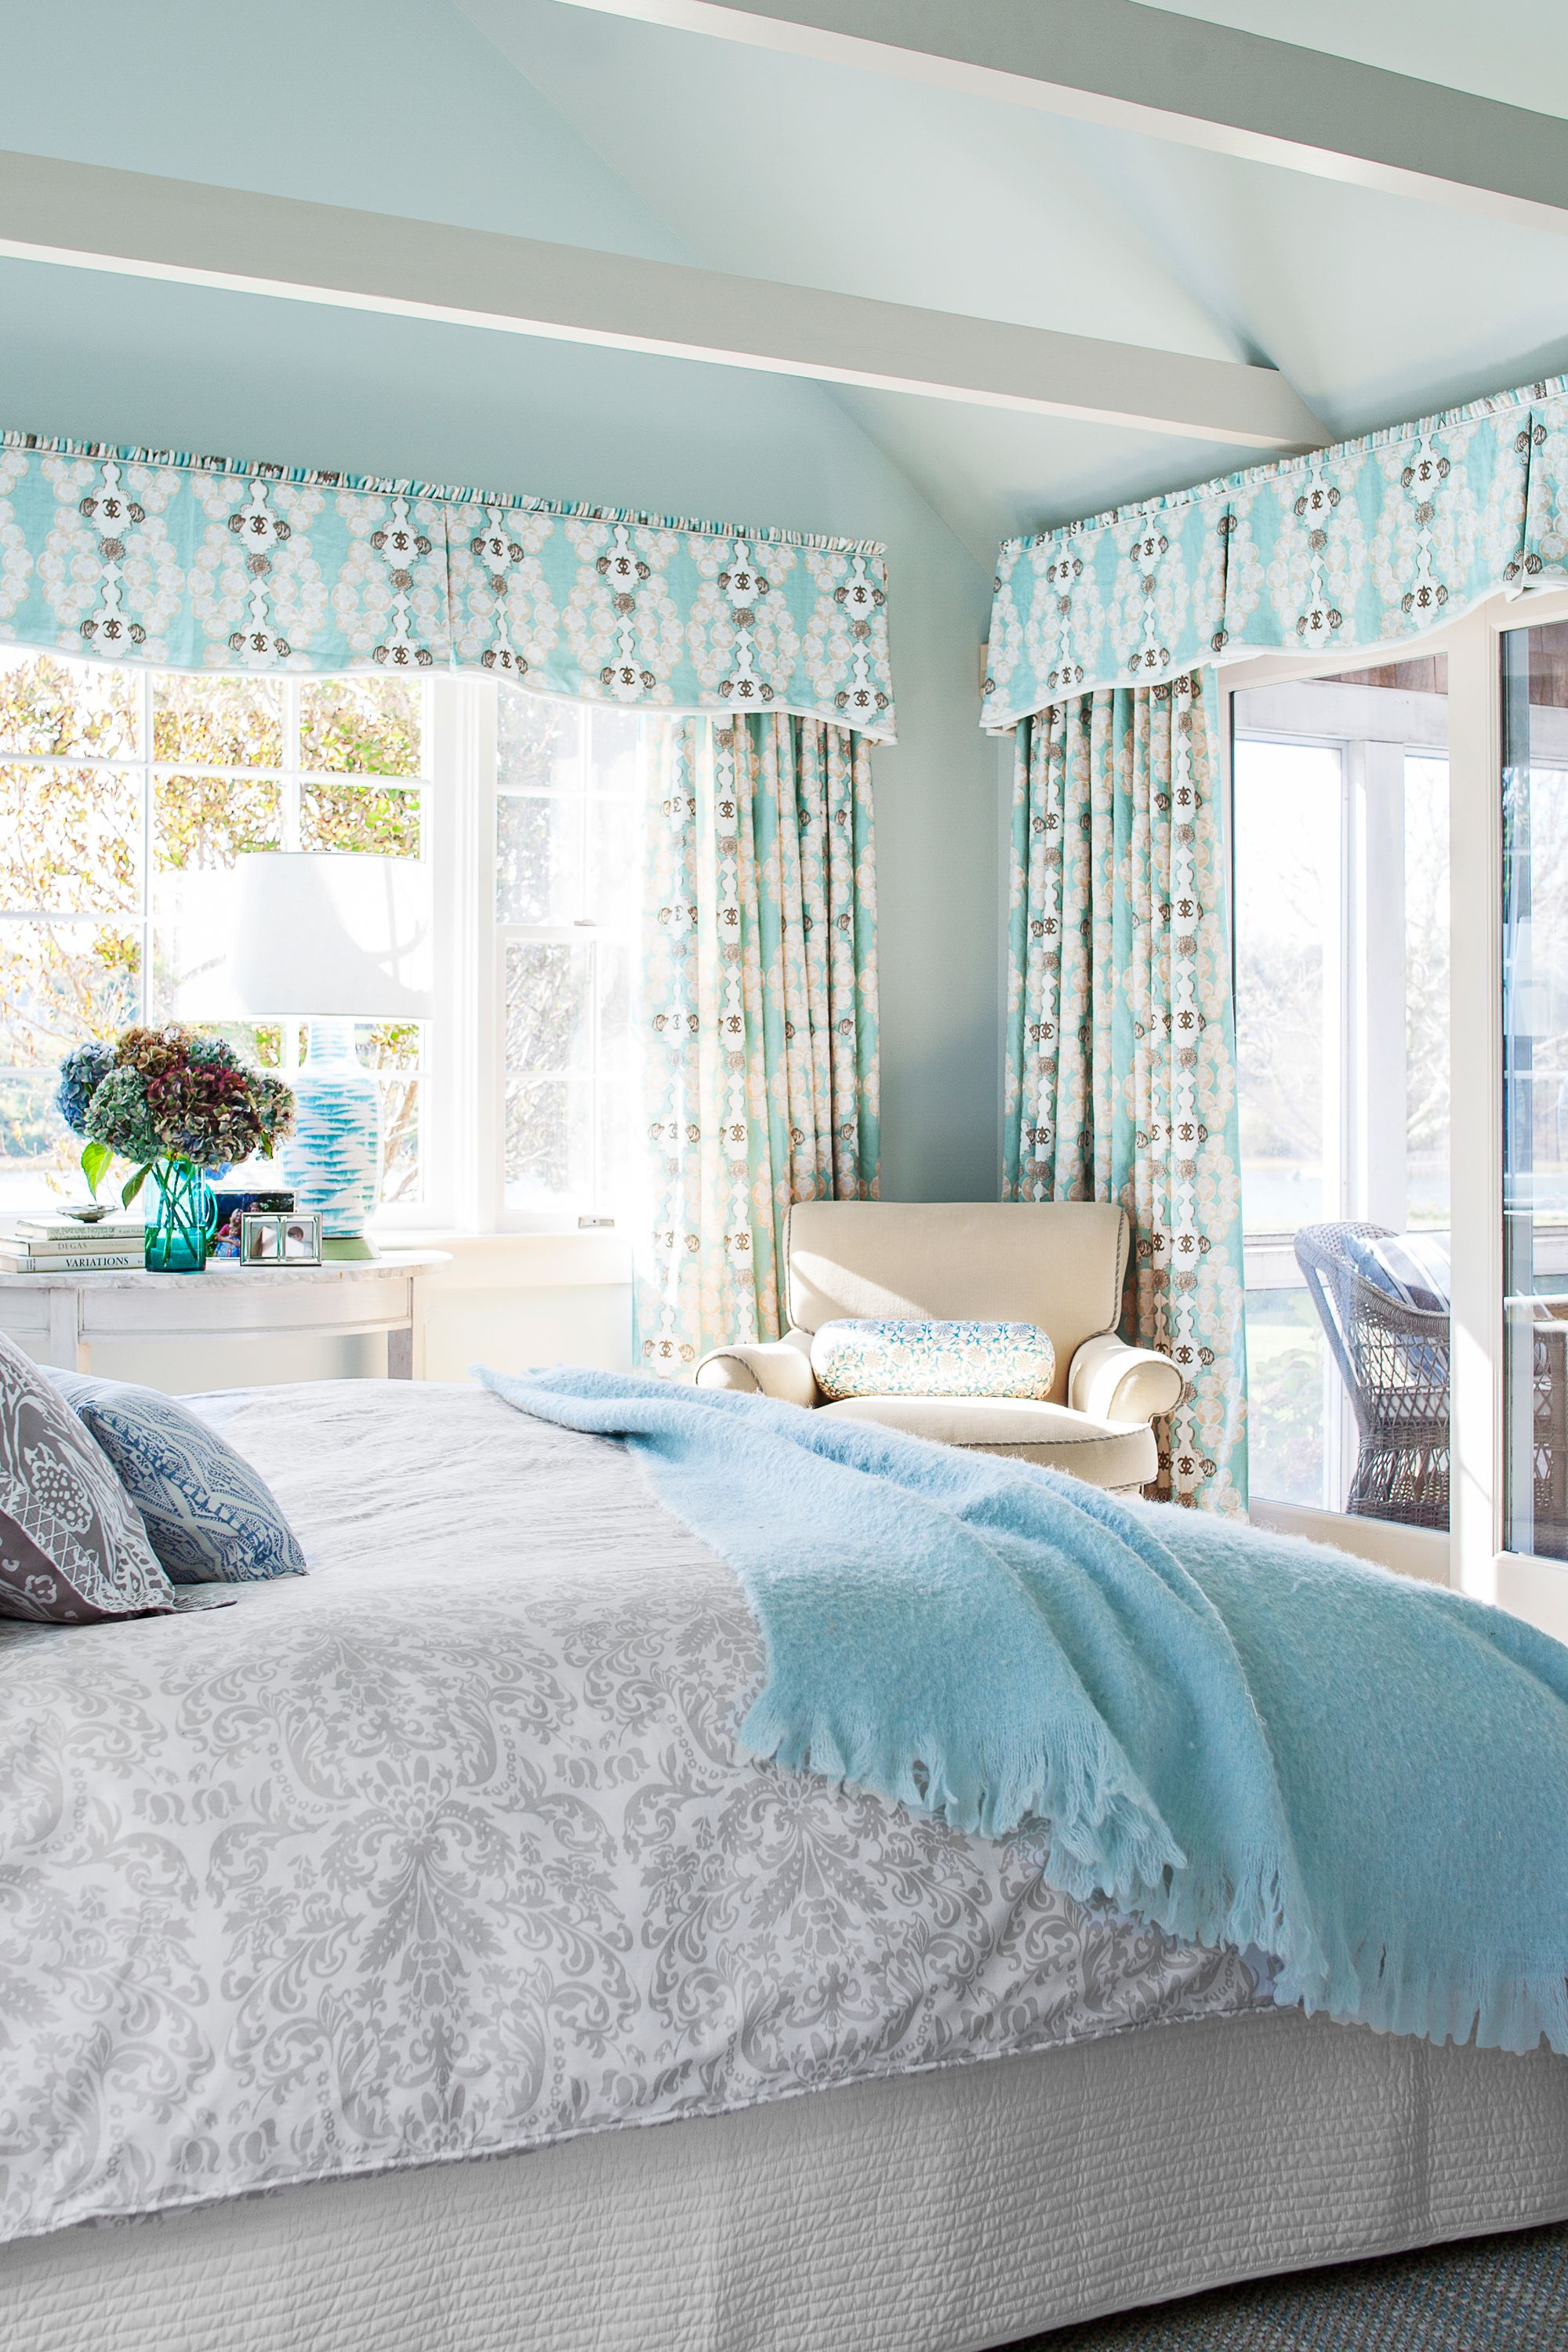 10. Blue accessories can change the mood of a room.